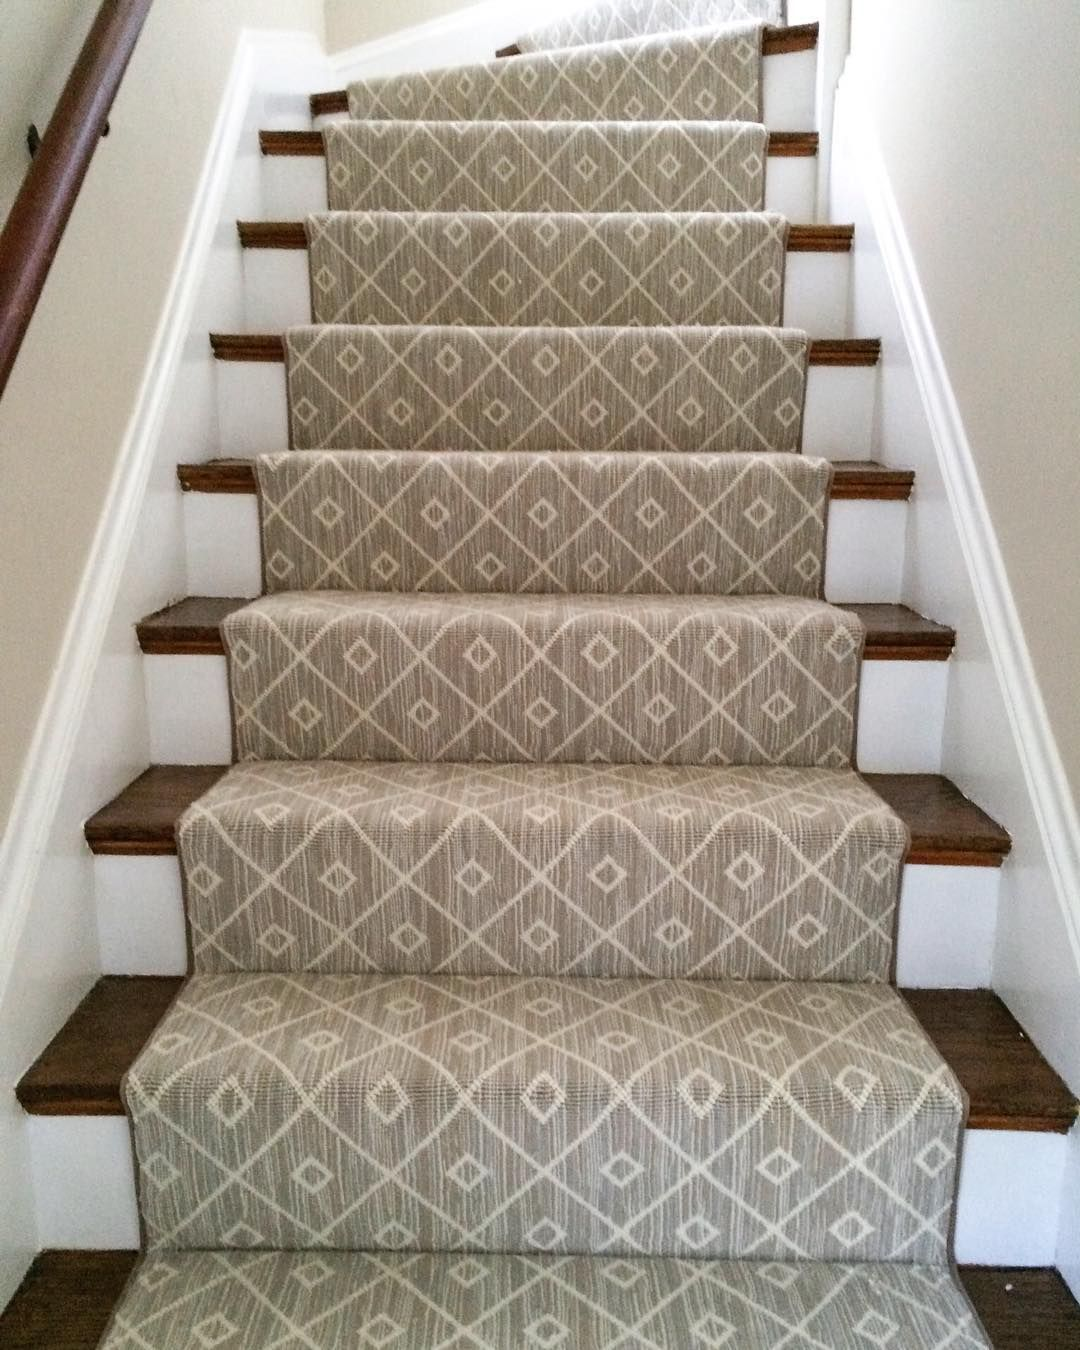 Mia A Woven 100 Wool Carpet Makes For A Beautiful Stair Runner | Carpet Rugs For Stairs | Navy Blue | Beige | Tartan | Wool | Diamond Pattern